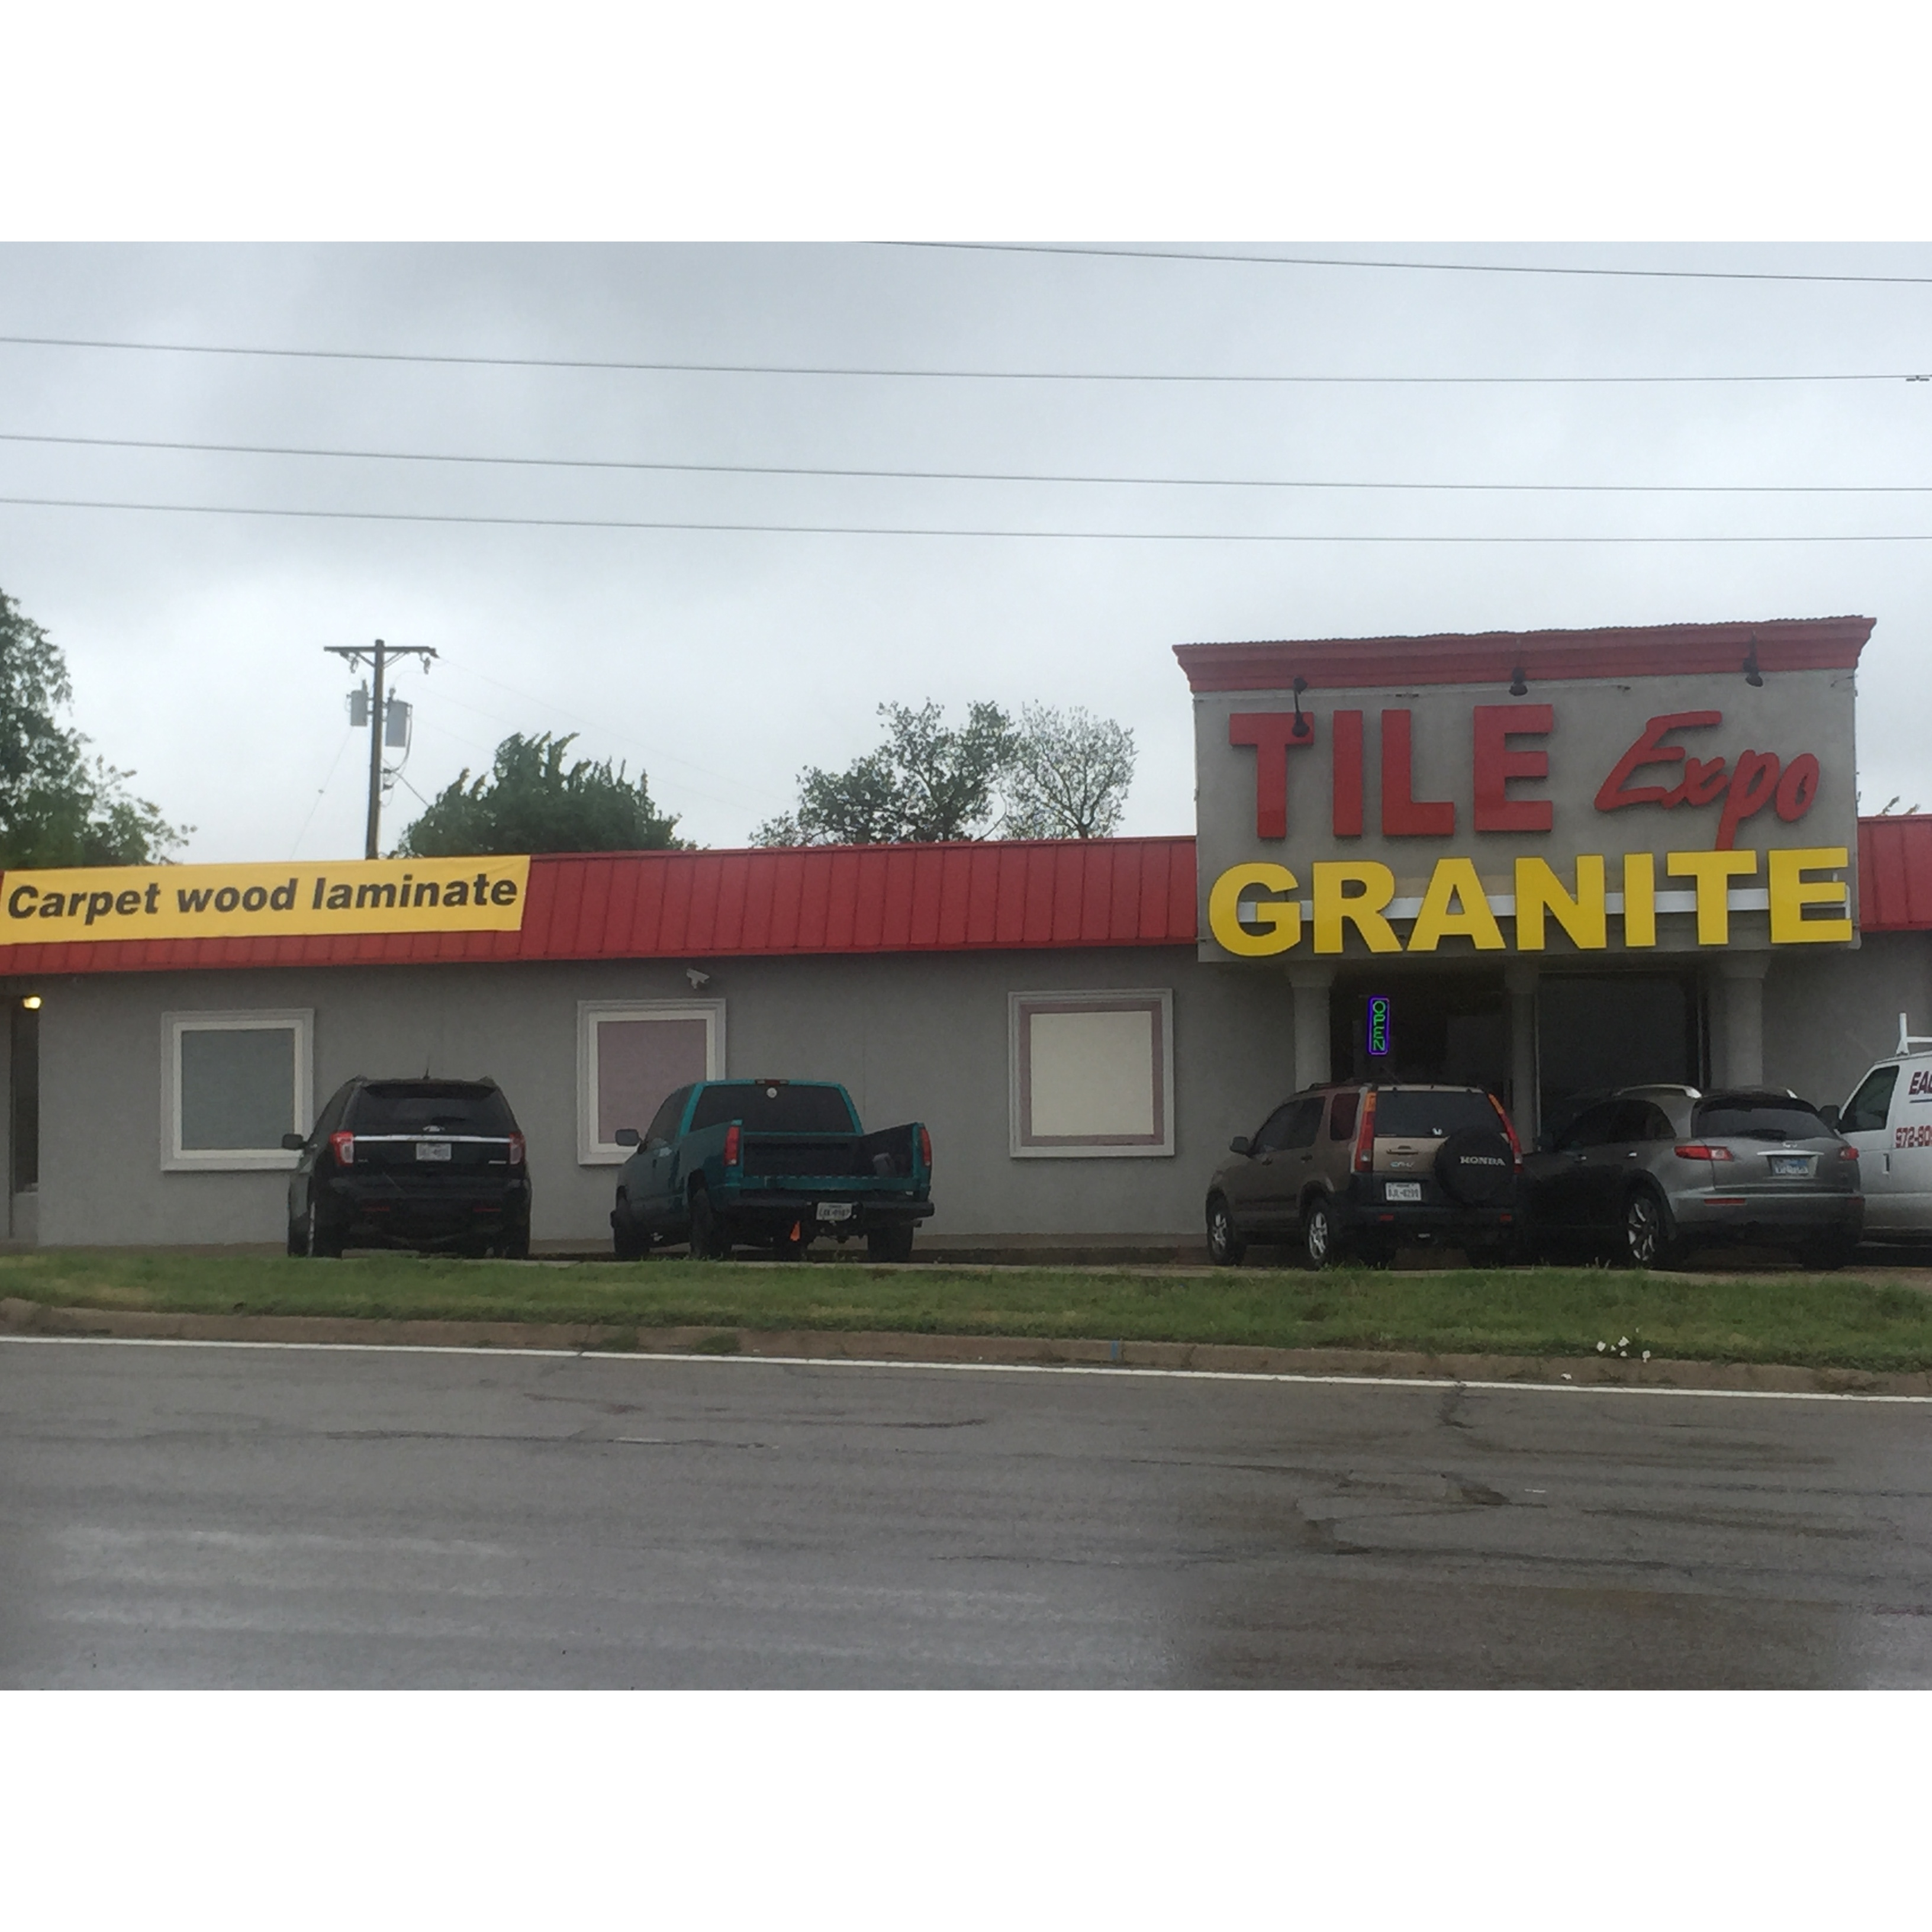 Flooring Services Farmers Branch : Tile expo granite coupons near me in farmers branch